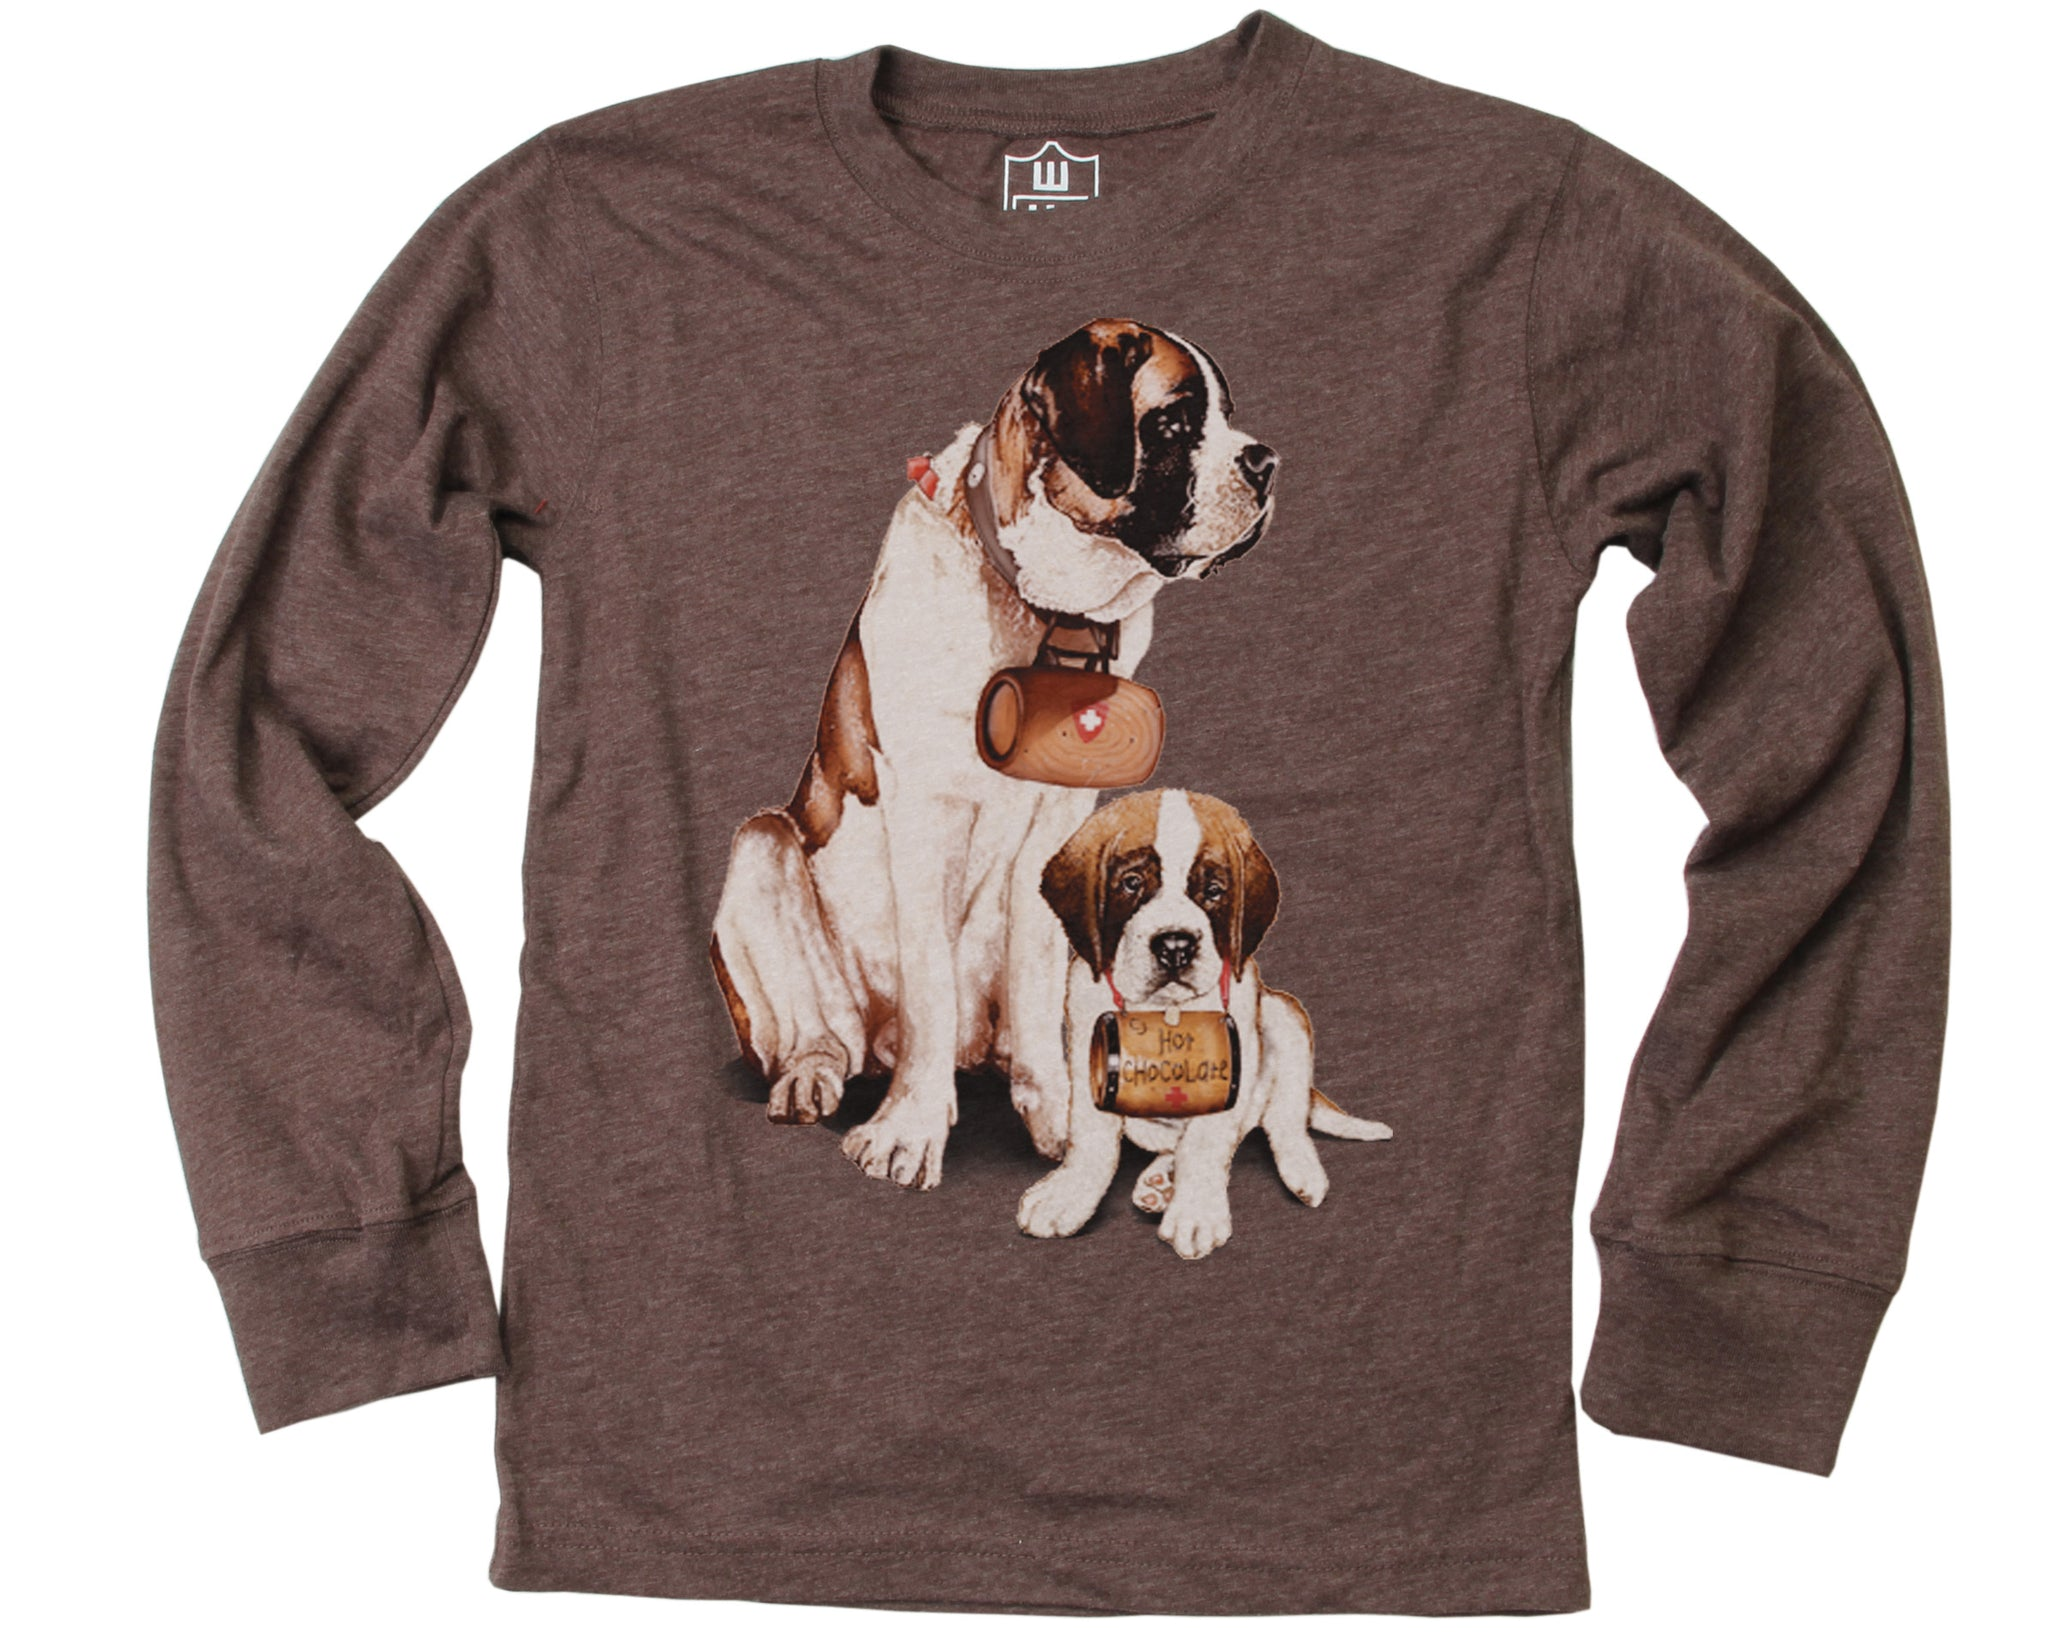 Boys Saint Bernard T-Shirt by Wes and Willy